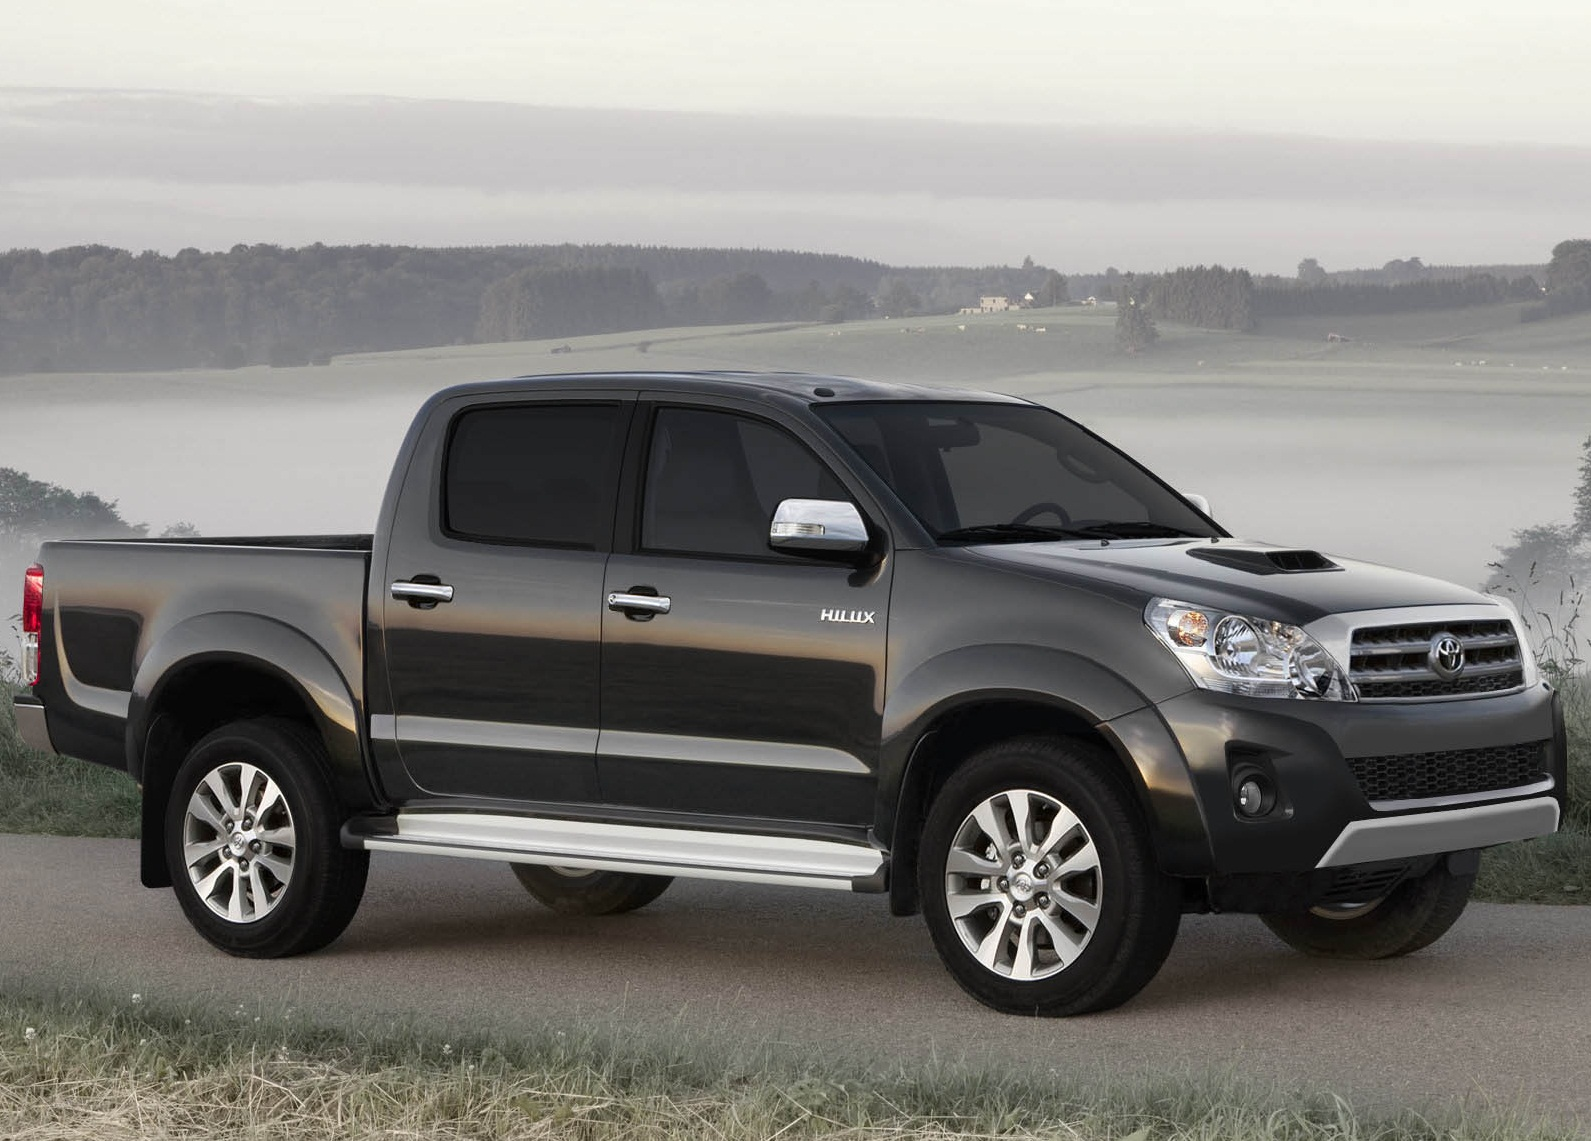 2014 toyota tacoma. Black Bedroom Furniture Sets. Home Design Ideas